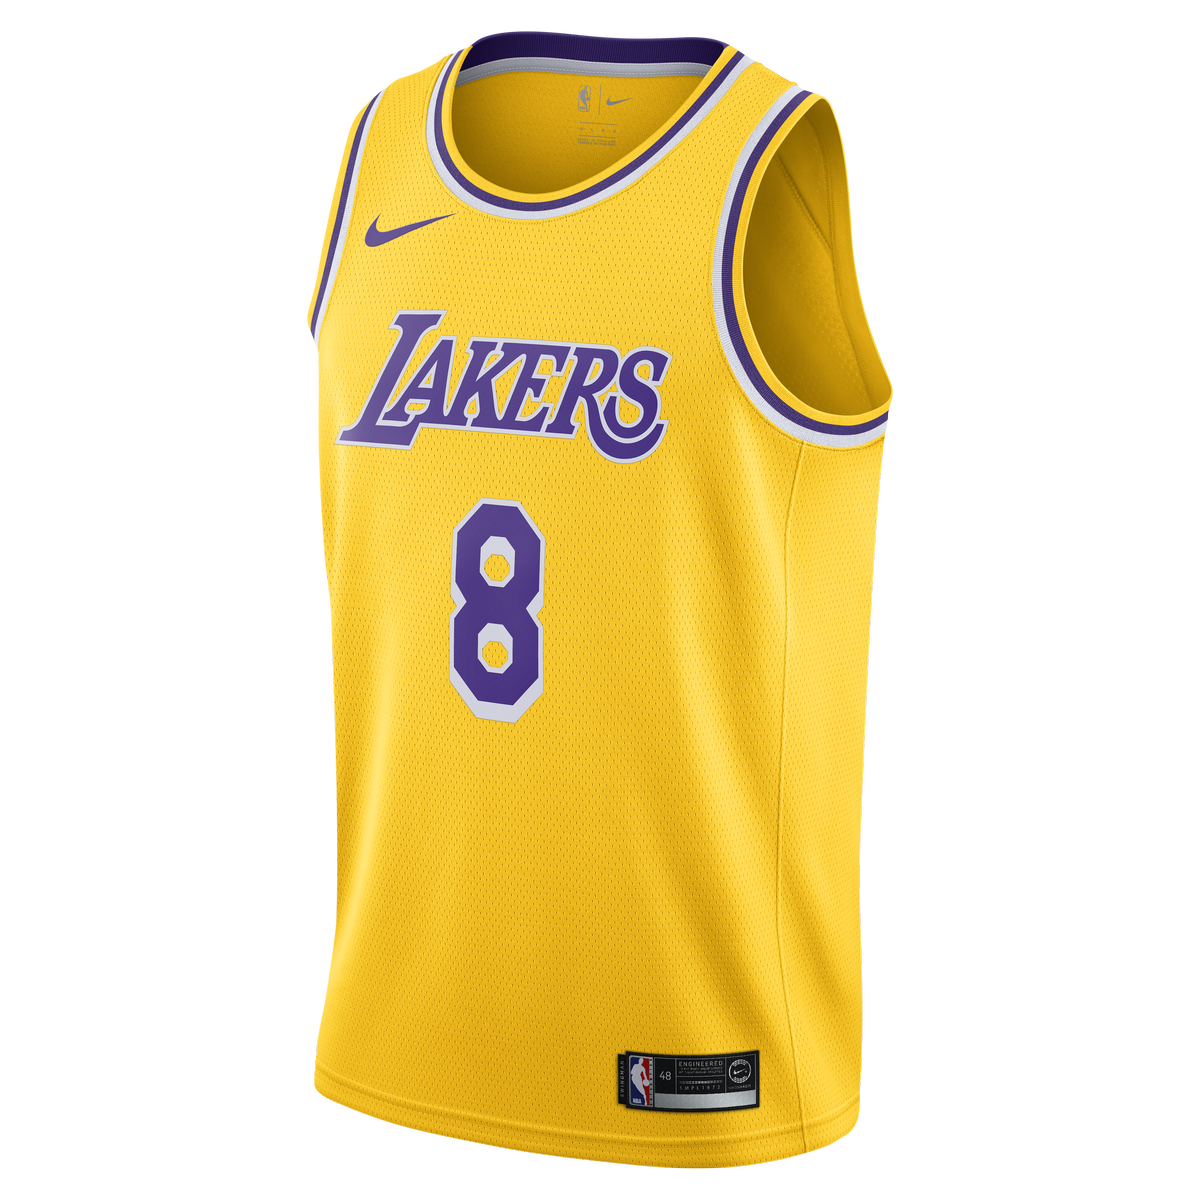 Lakers fans can celebrate 'Kobe Bryant Day' with a new Nike jersey ...